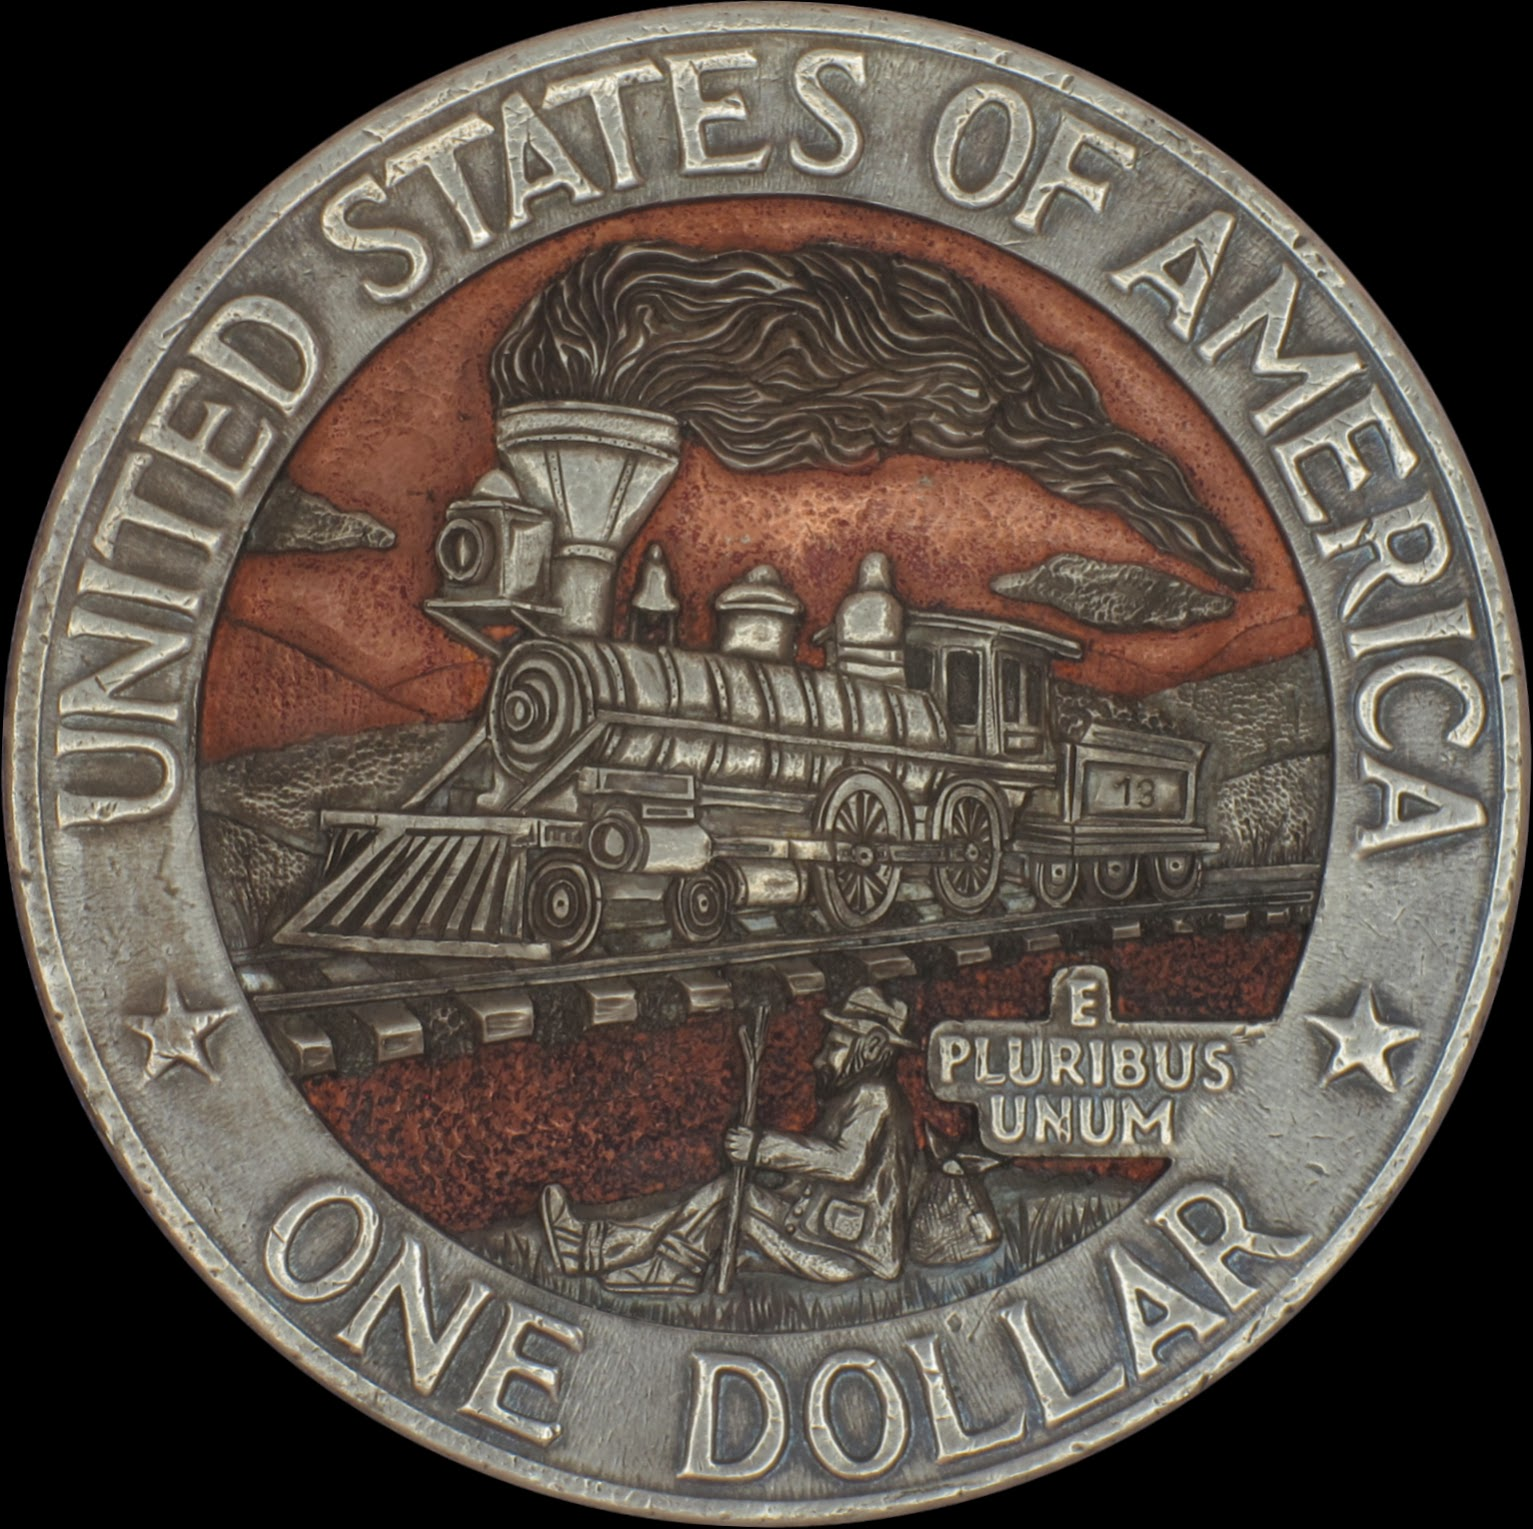 15-Train-Paolo-Curio-aka-MrThe-Hobo-Nickels-Skull-Coins-&-Other-Sculptures-www-designstack-co